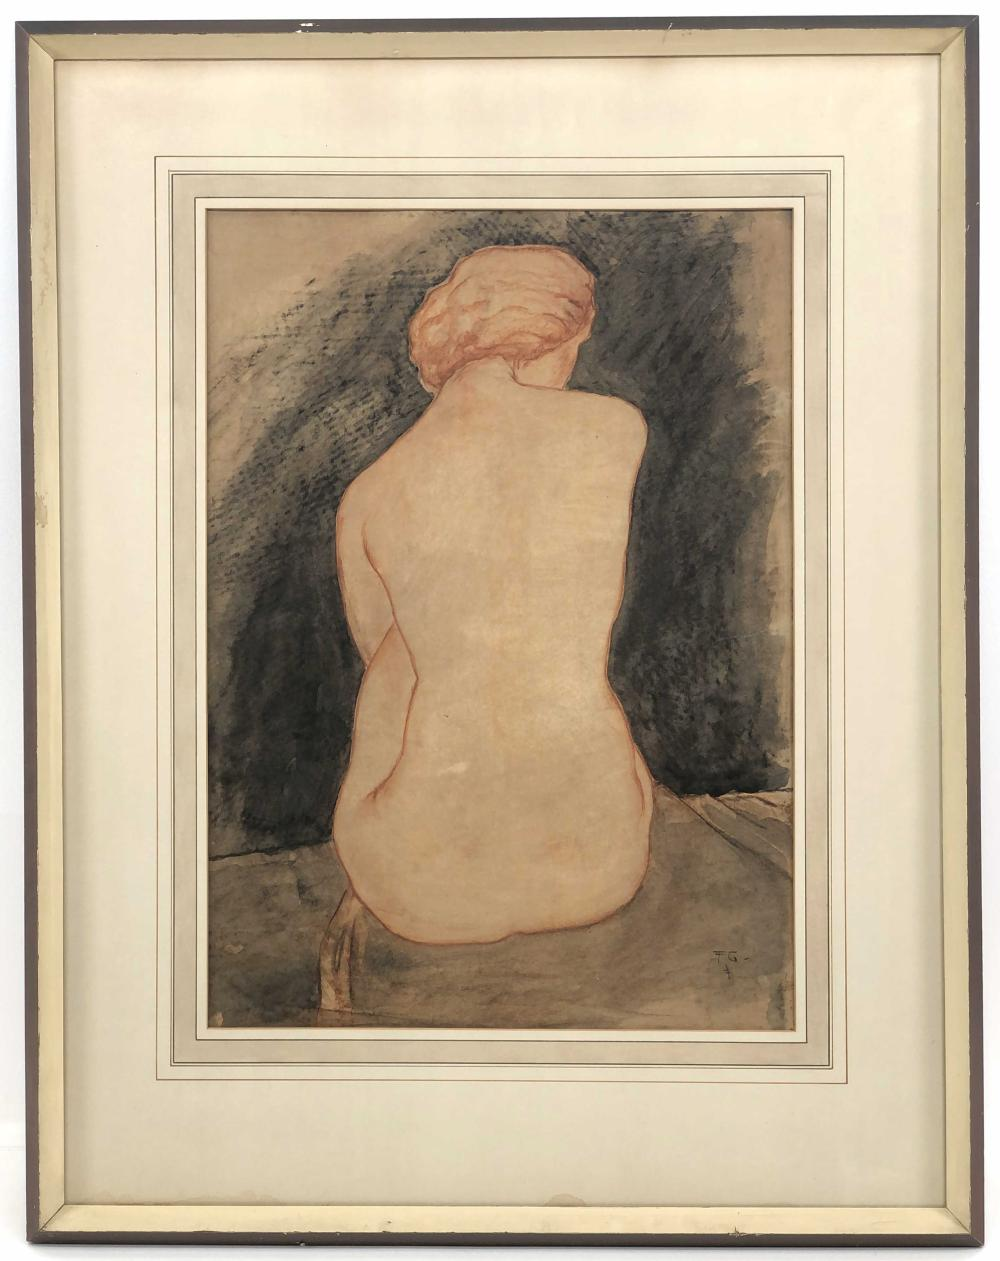 FRANZ GRUSS NUDE WOMAN PASTEL & CHARCOAL ON PAPER